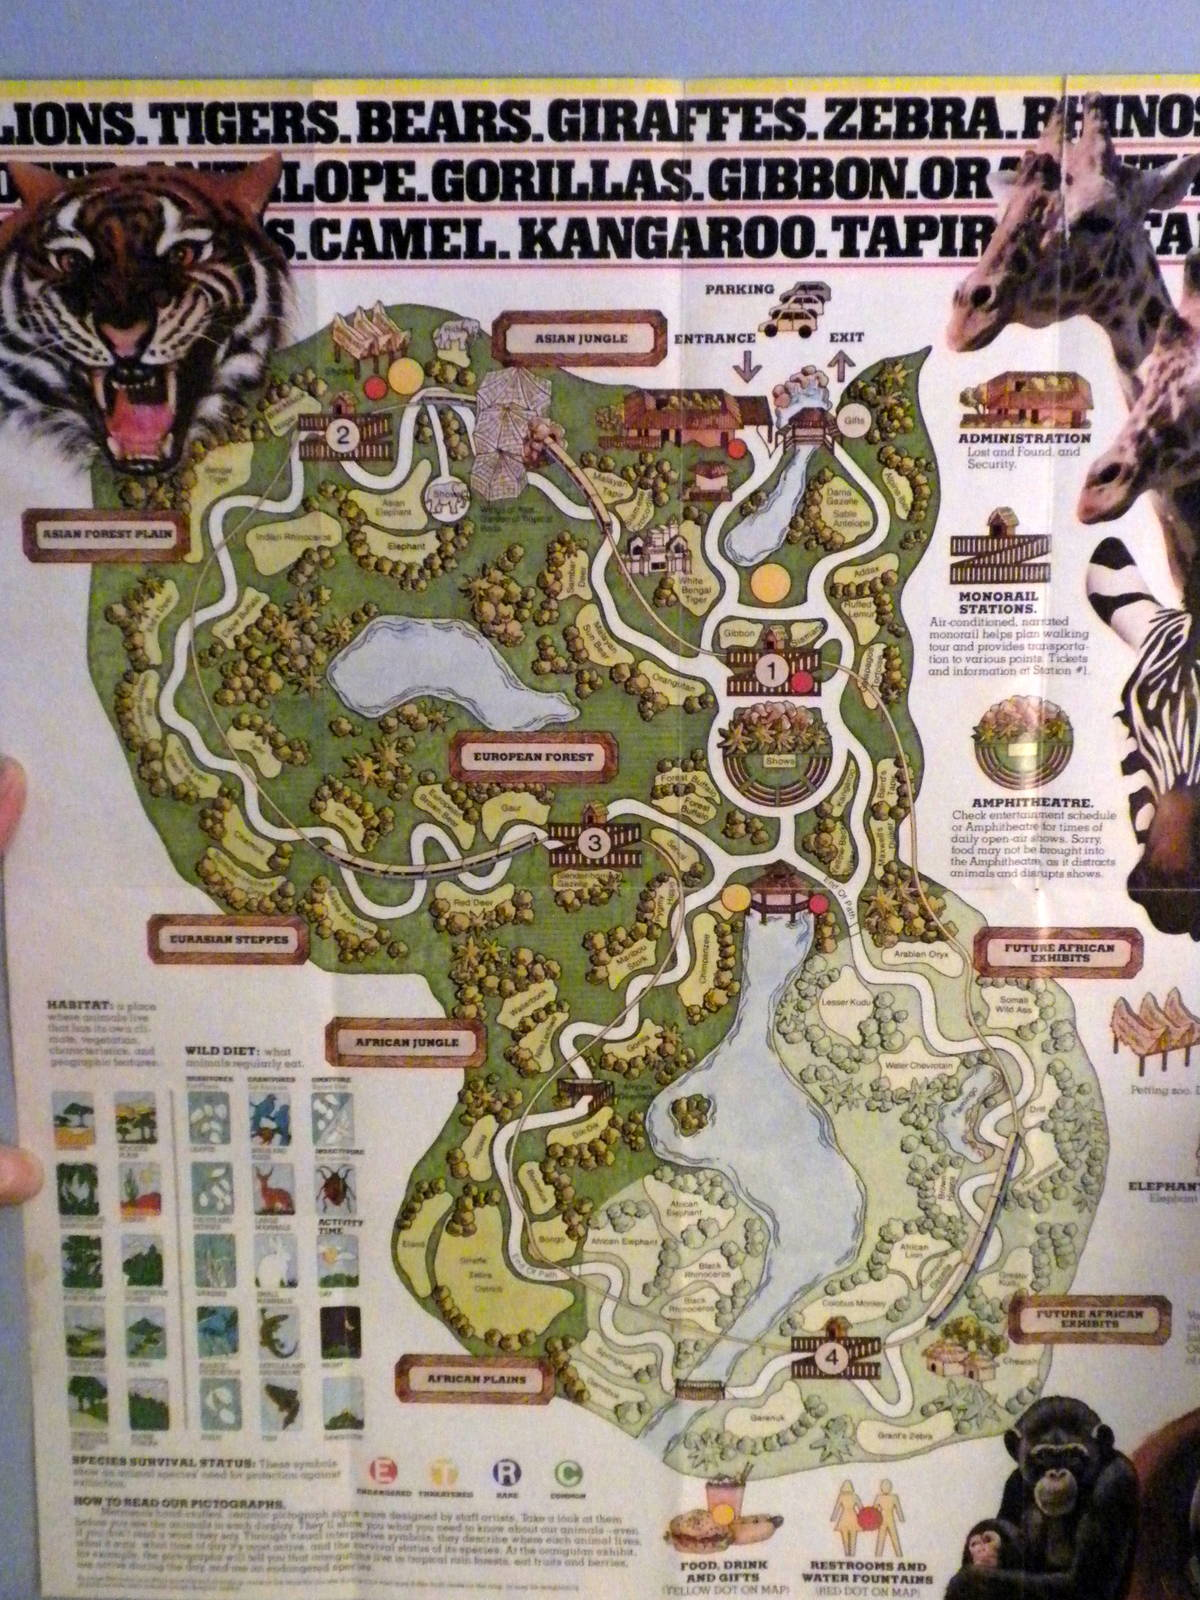 Scanned Miami Metro Zoo Photos 1990 2006   ZooChat Scanned Miami Metro Zoo Photos 1990 2006